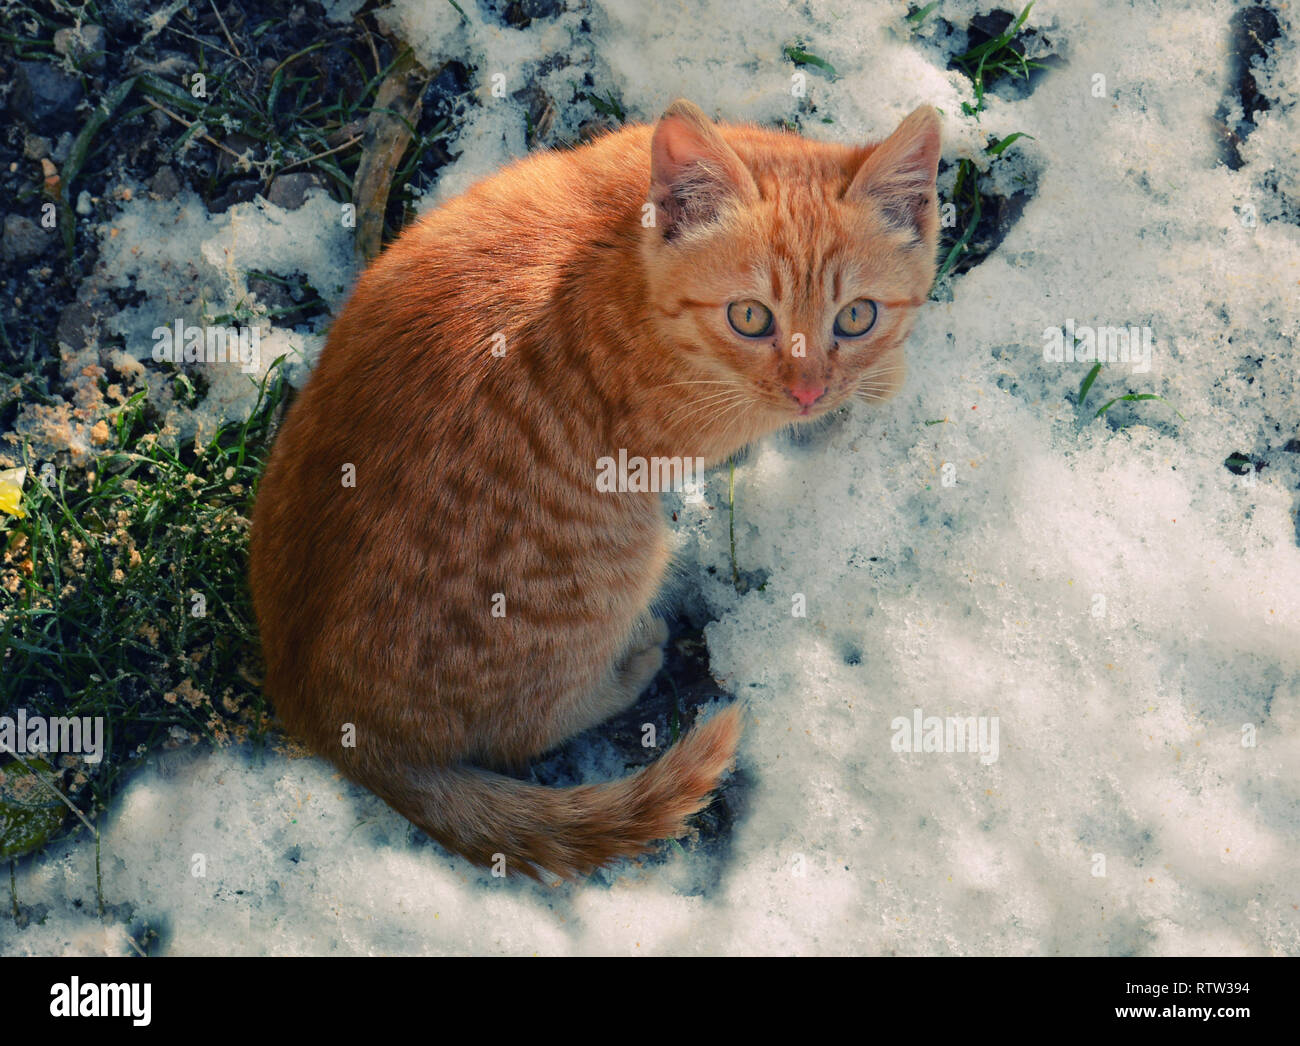 A beautiful bright red cat with yellow eyes and pink nose. Cat on the snow. Yellow and white cat with yellow eyes. - Stock Image